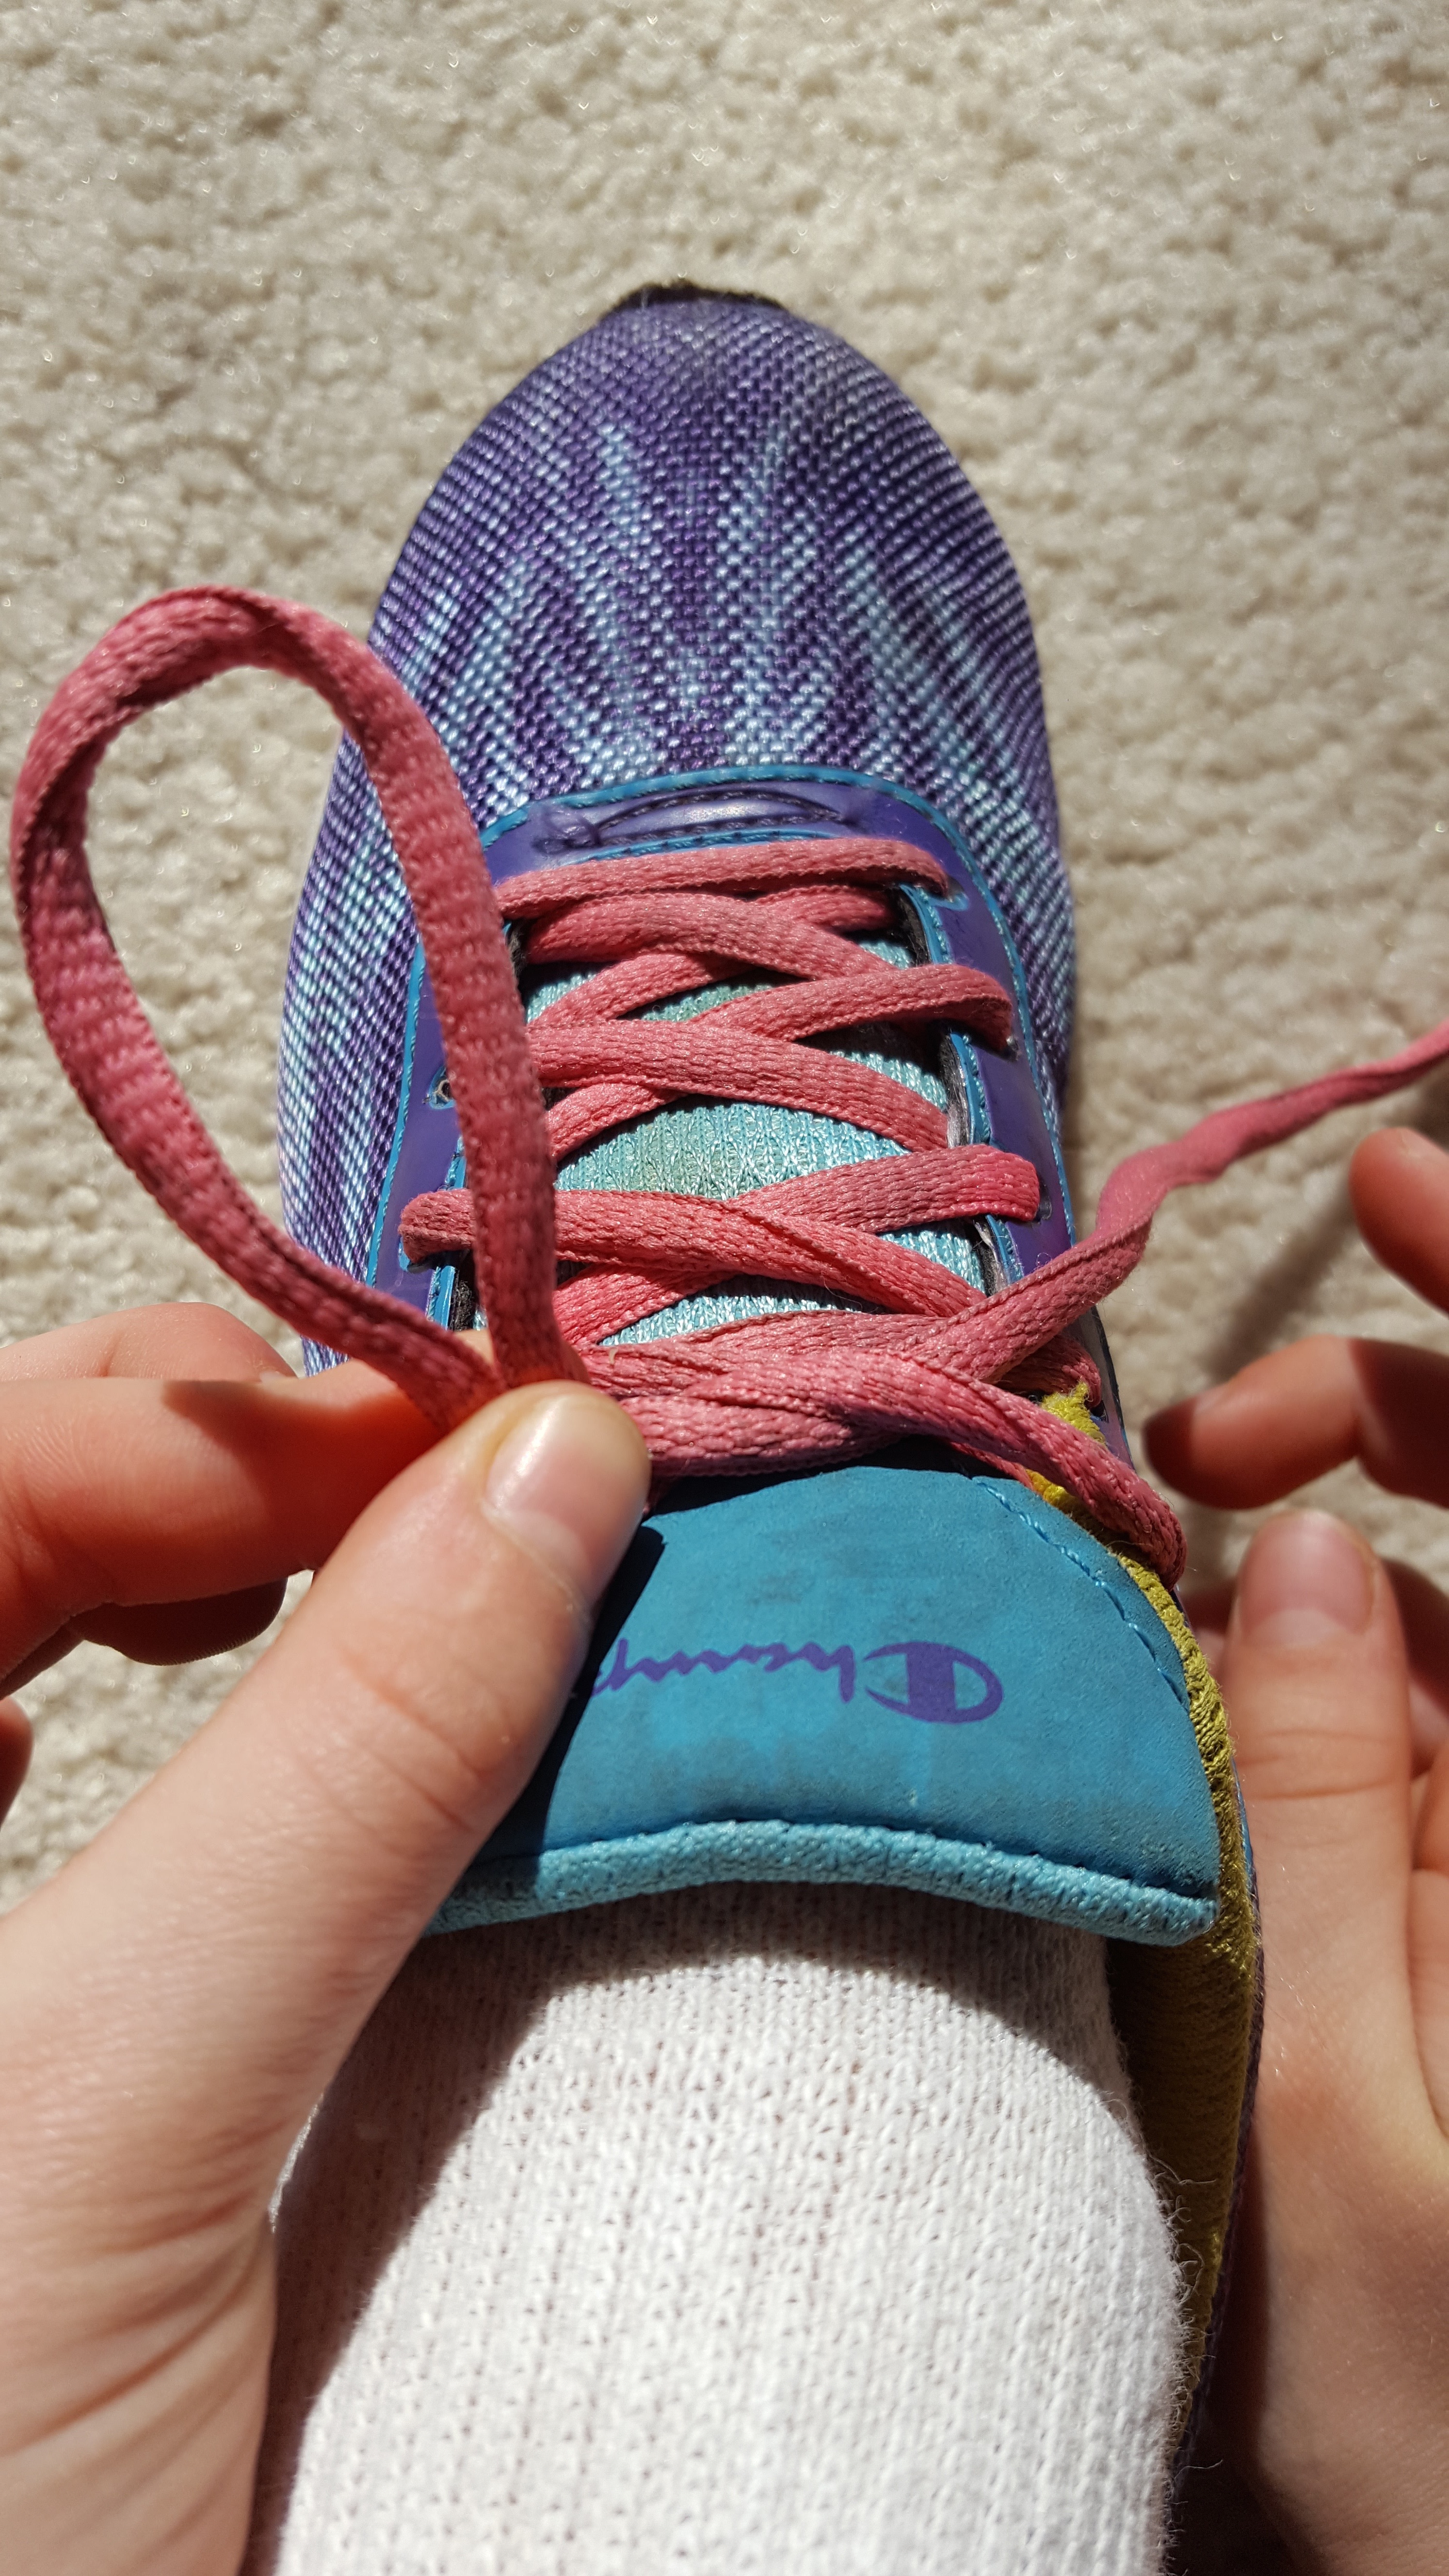 Picture of Make a Loop (Bunny Ear) on One Side of the Shoe. Hold the The Lace Higher Up With One Hand and Pinch It Together at the Bottom With the Other Hand.